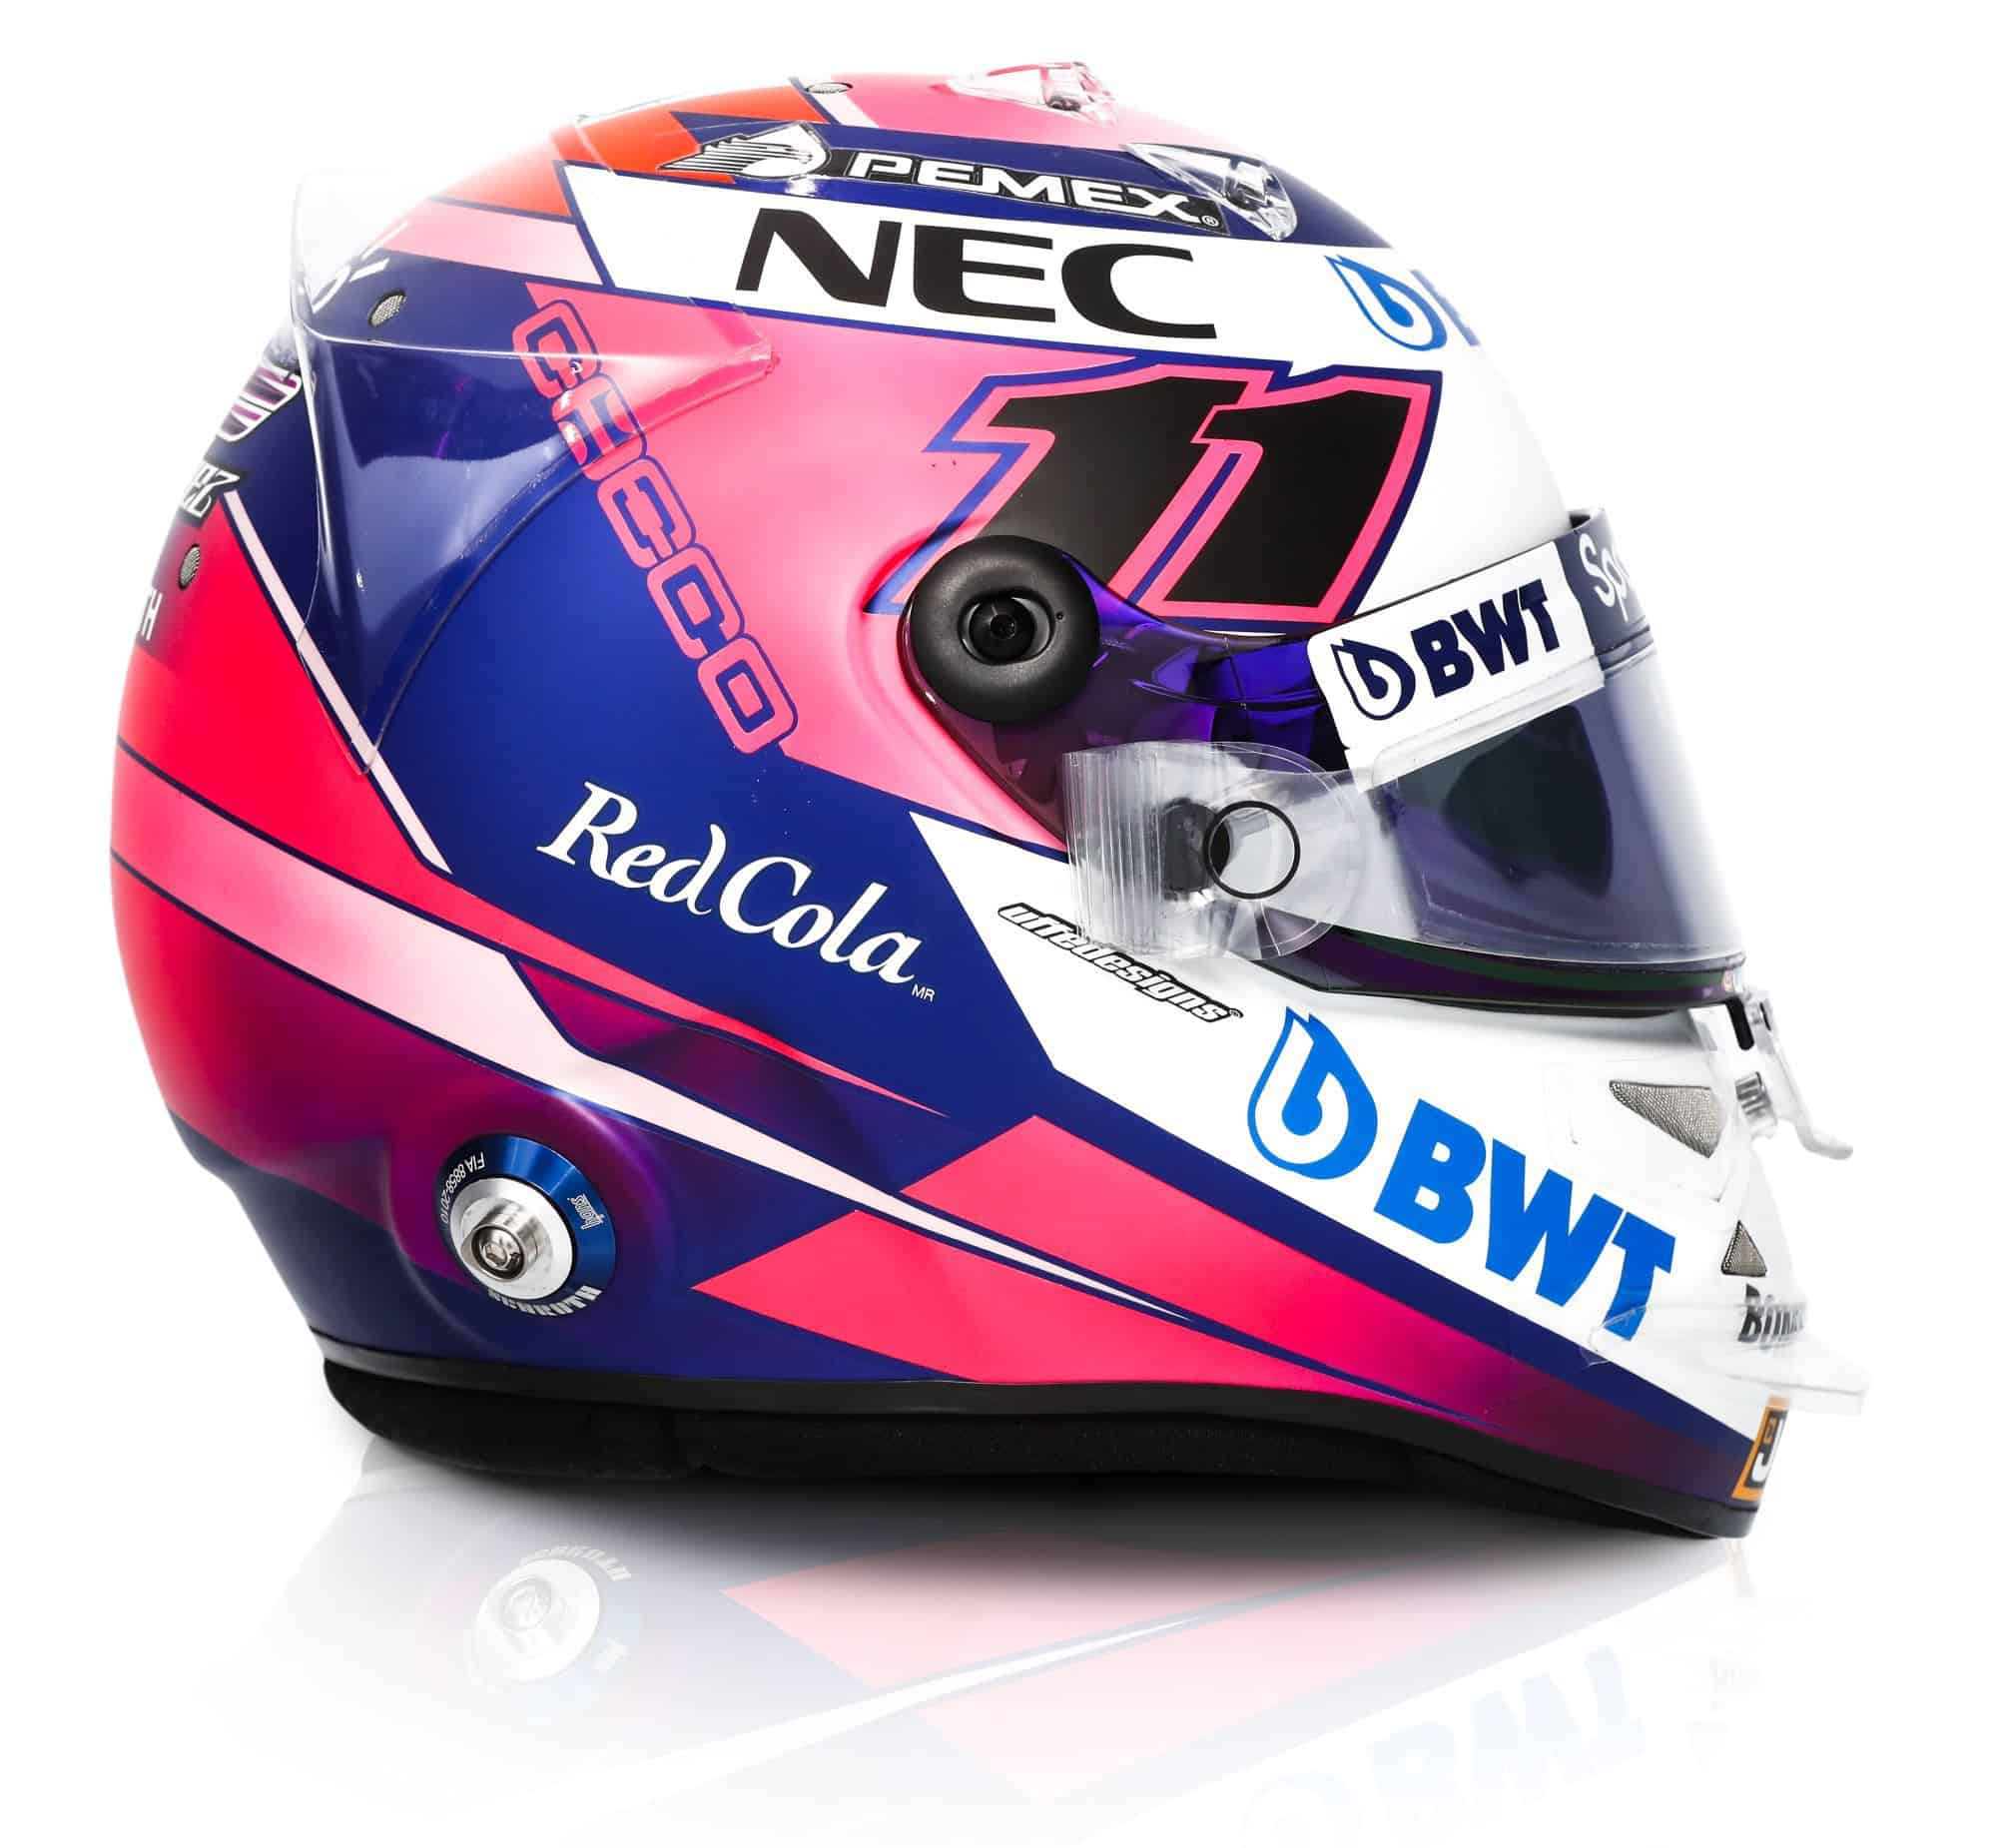 2019 Sport Pesa Racing Point Sergio Perez helmet right side Photo Racing Point Edited by MAXF1net